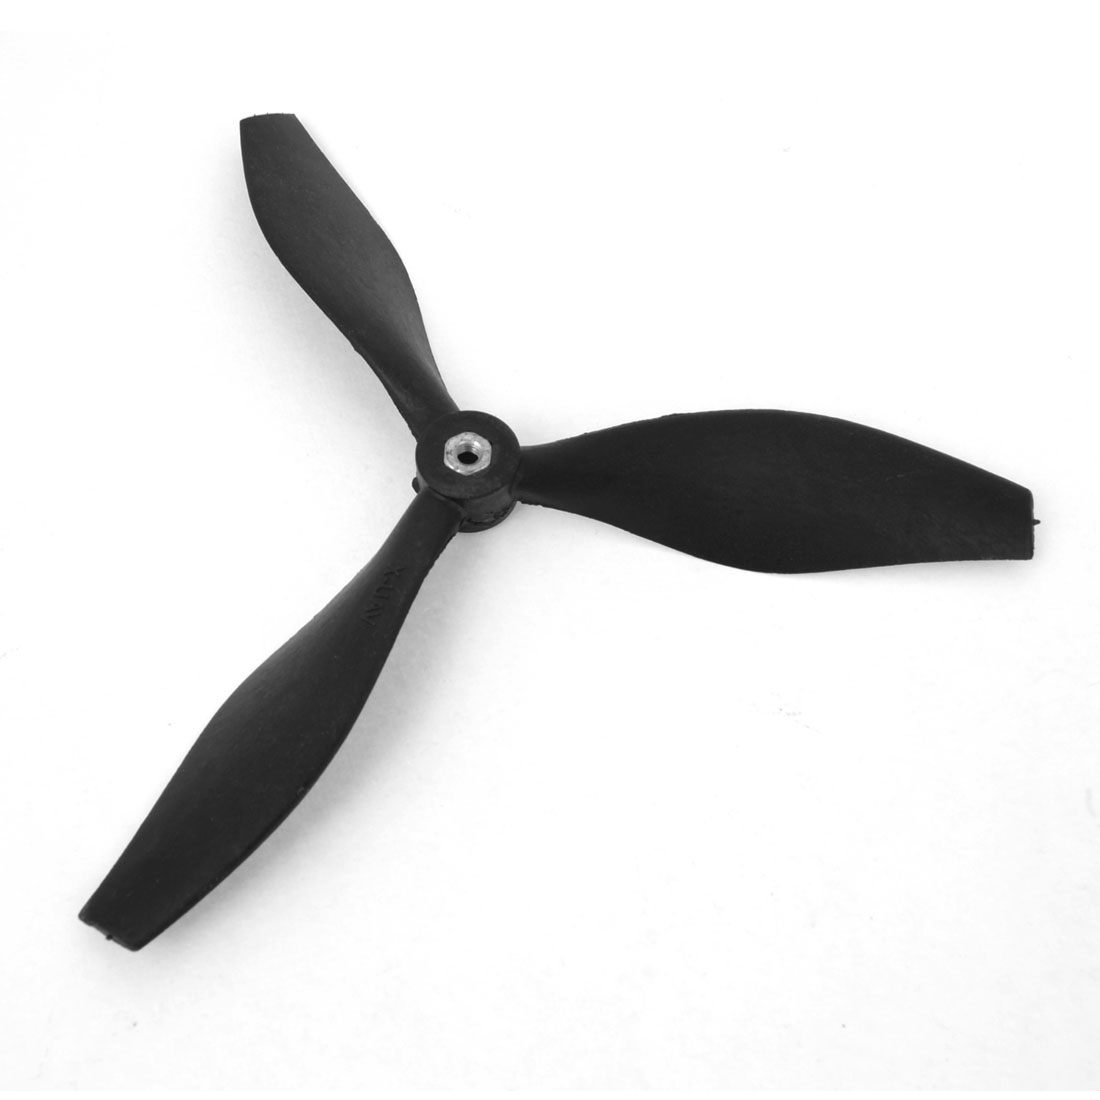 Black 5x5 3-Vanes Prop Propeller for 2.5mm Shaft Dia RC Model Plane Aircraft